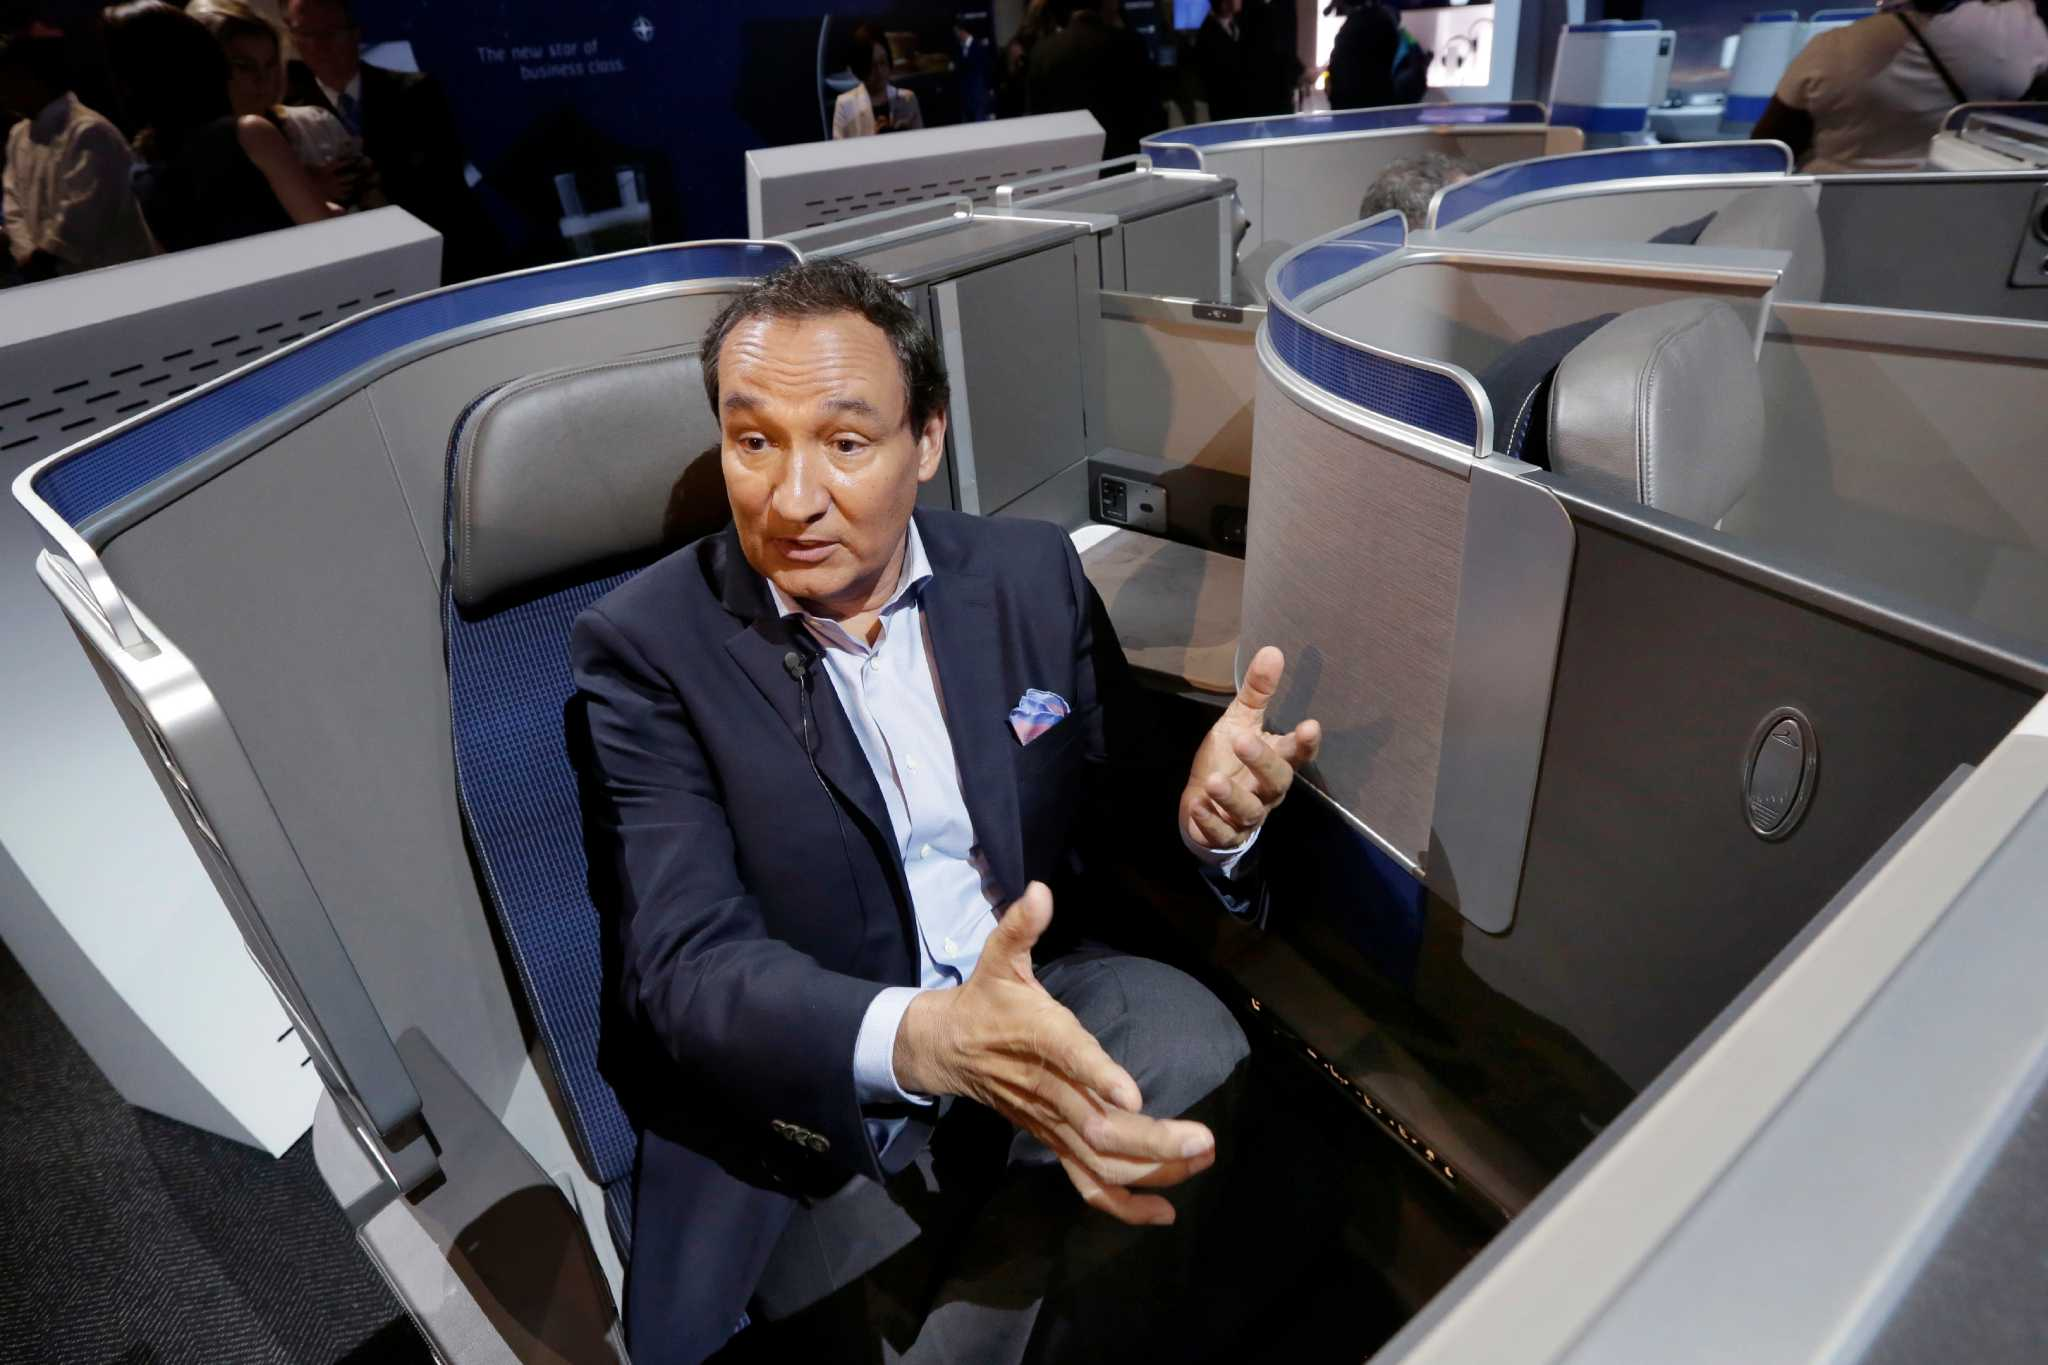 United's international business cl gets an upgrade - Houston ...